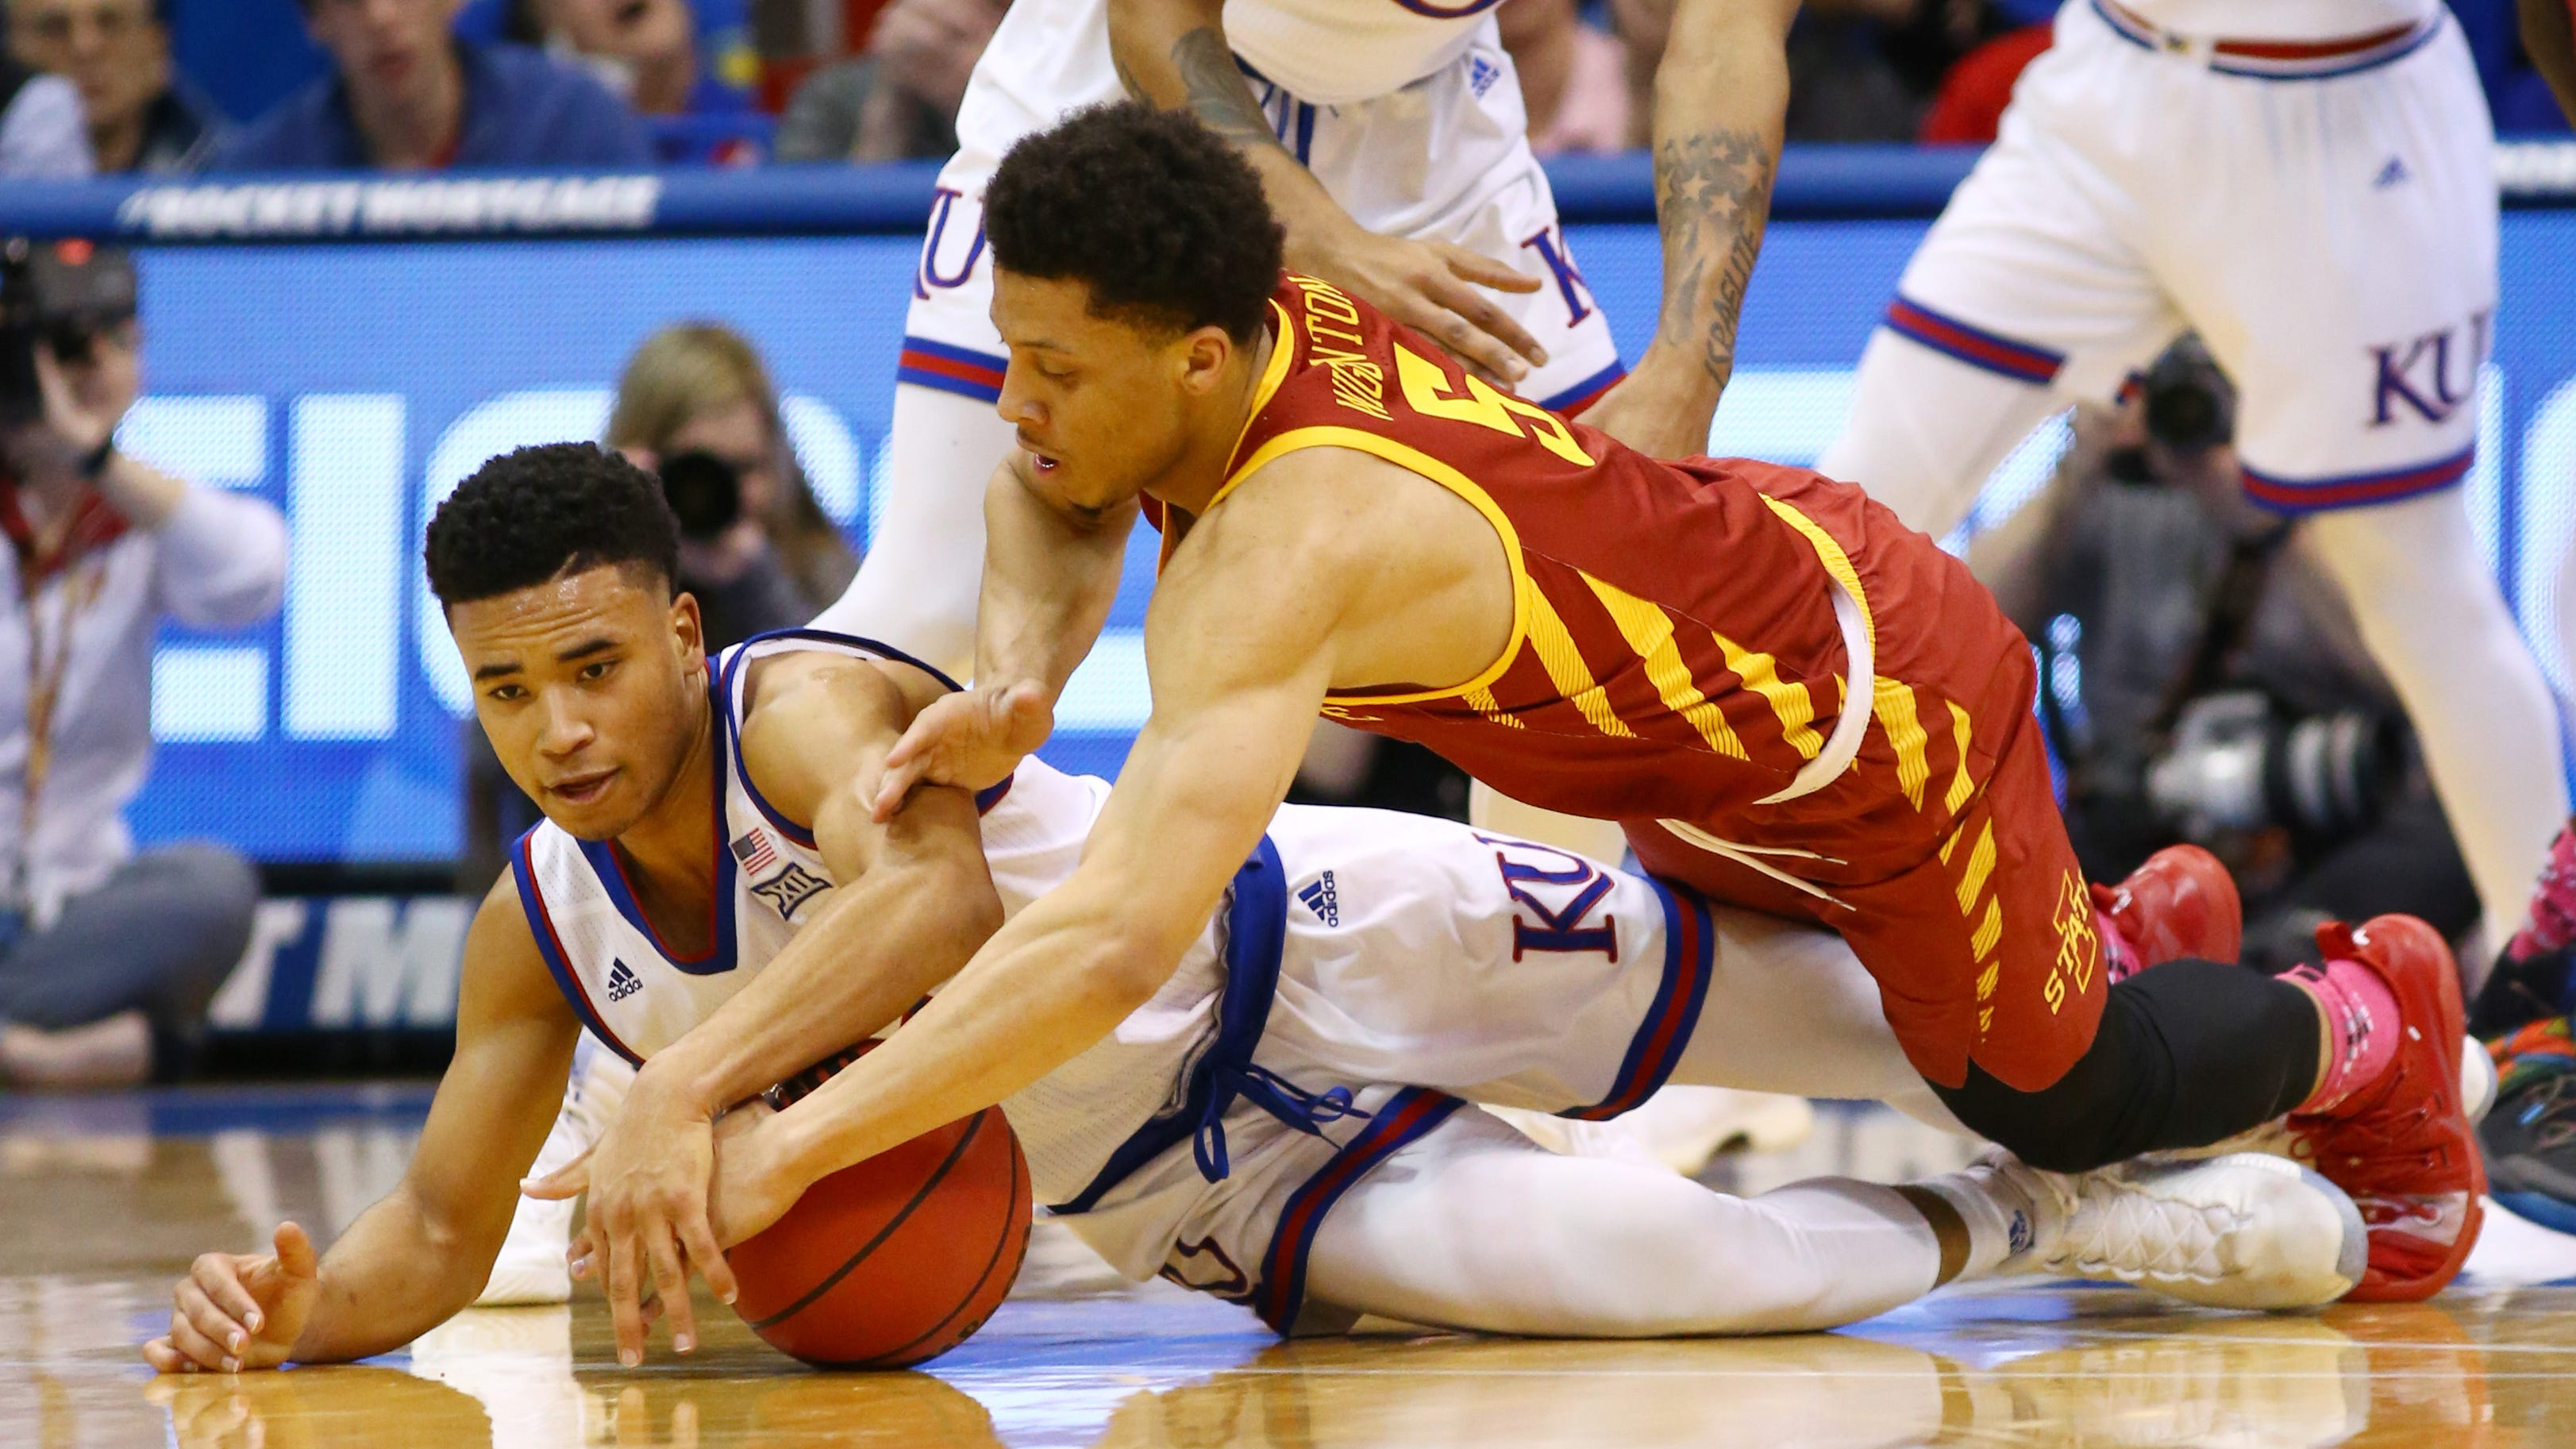 Kansas forward Dedric Lawson (1) and Iowa State guard Lindell Wigginton (5) dive for a loose ball in the second half of their game at Allen Fieldhouse in Lawrence, Kansas, on Monday, Jan. 21, 2019